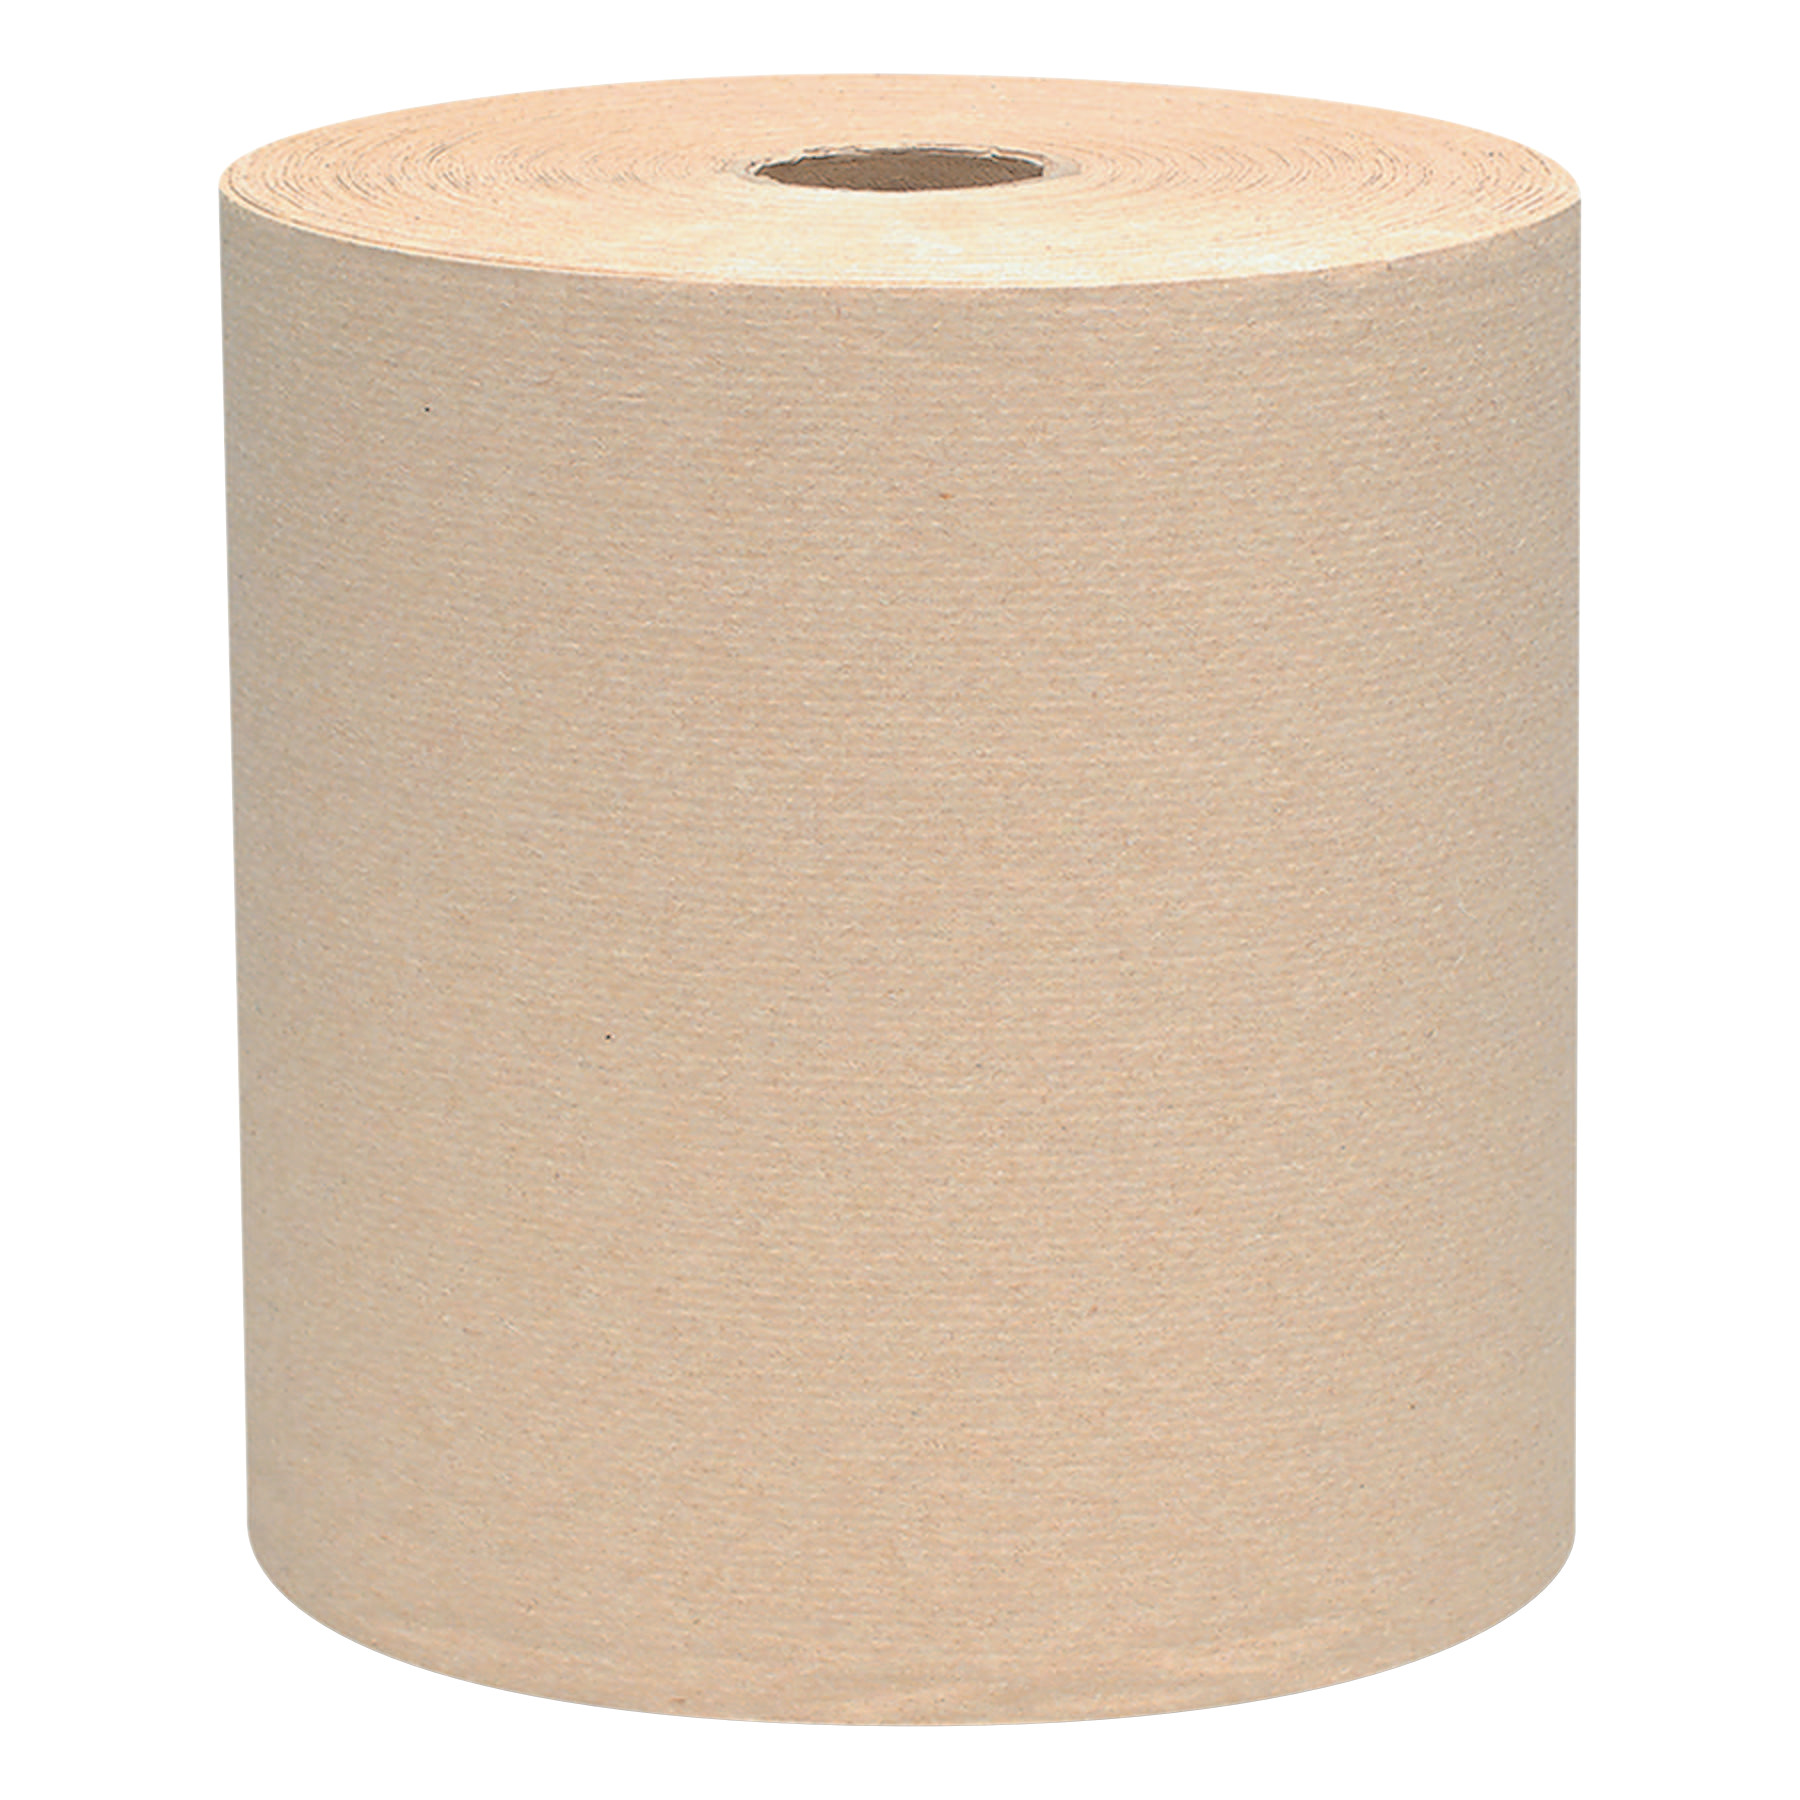 Kimberly-Clark Professional Scott Towels, Hard Roll, Natural